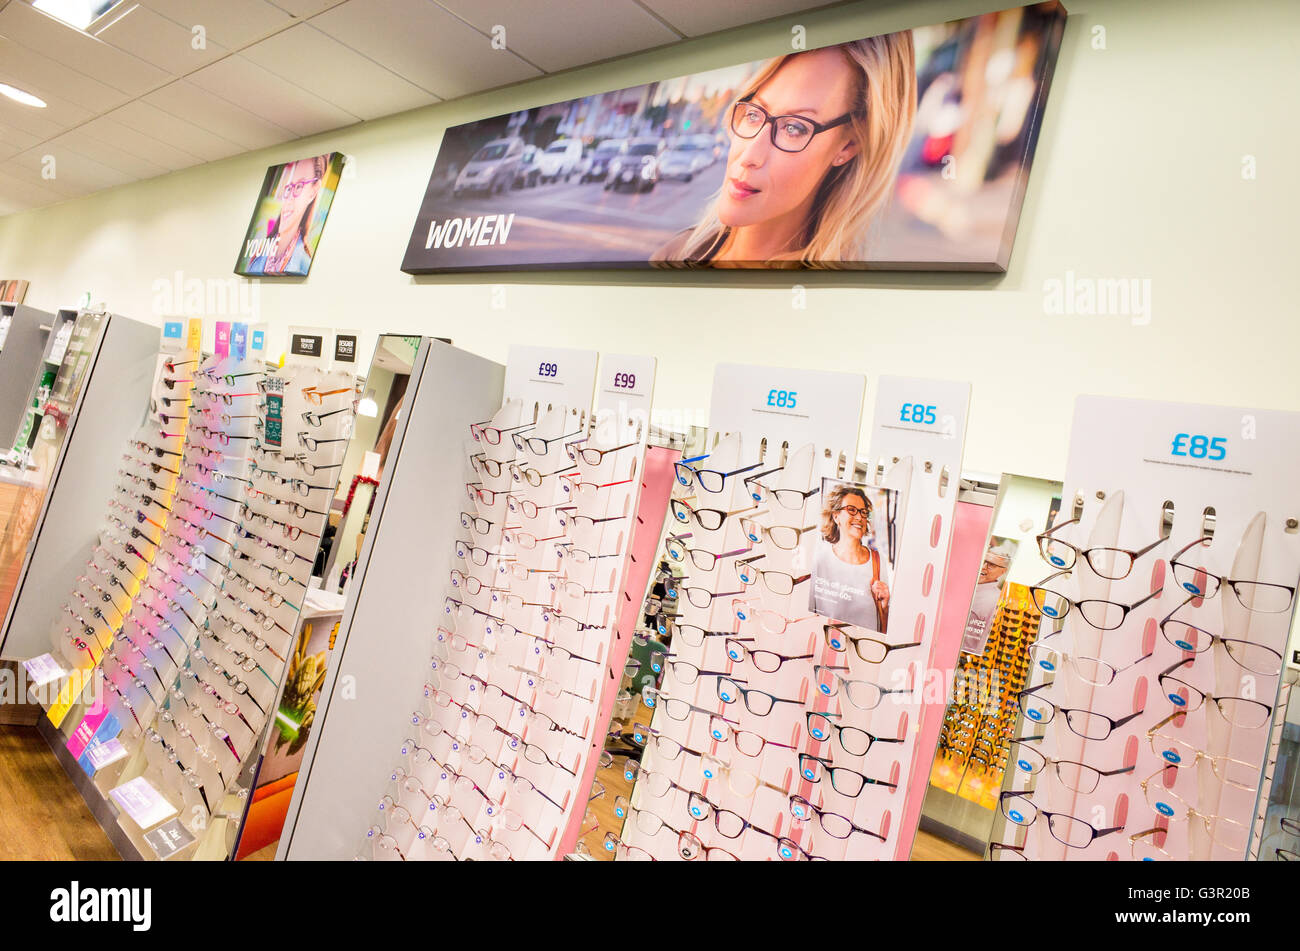 3ae983383f3 Specsavers Stock Photos   Specsavers Stock Images - Alamy